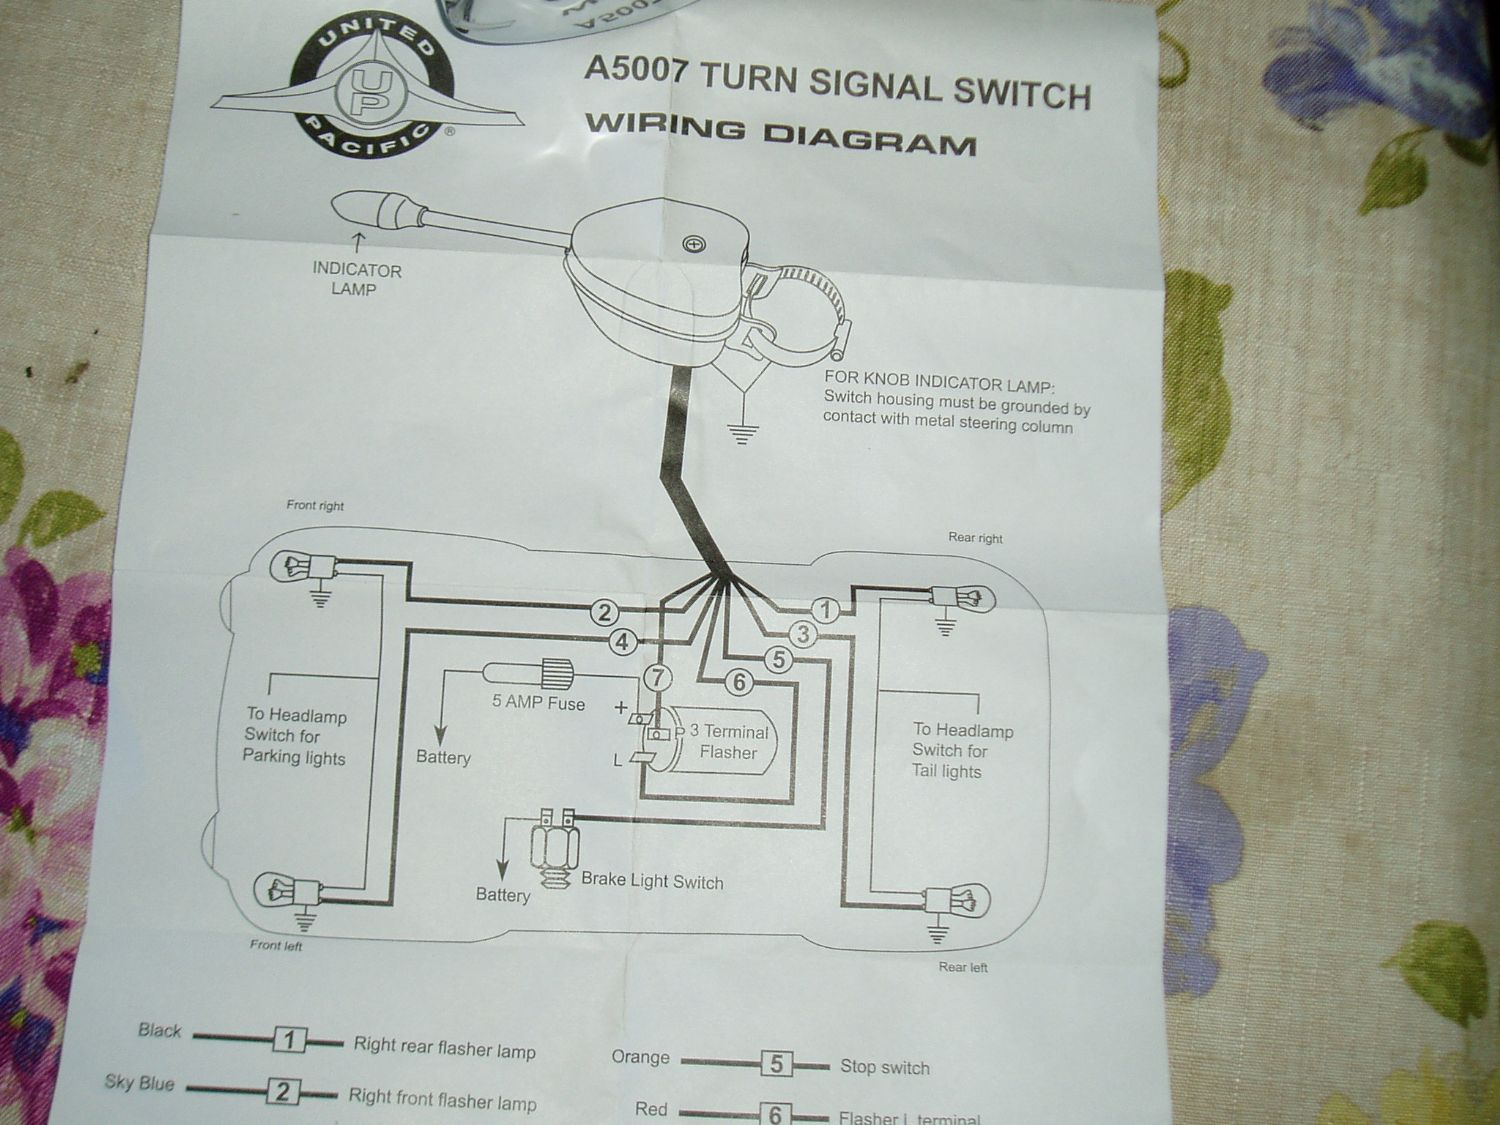 Turn Signal Wiring - The CJ2A Page Forums - Page 1 | Turn Signal Wire Diagram 6 |  | The CJ2A Page